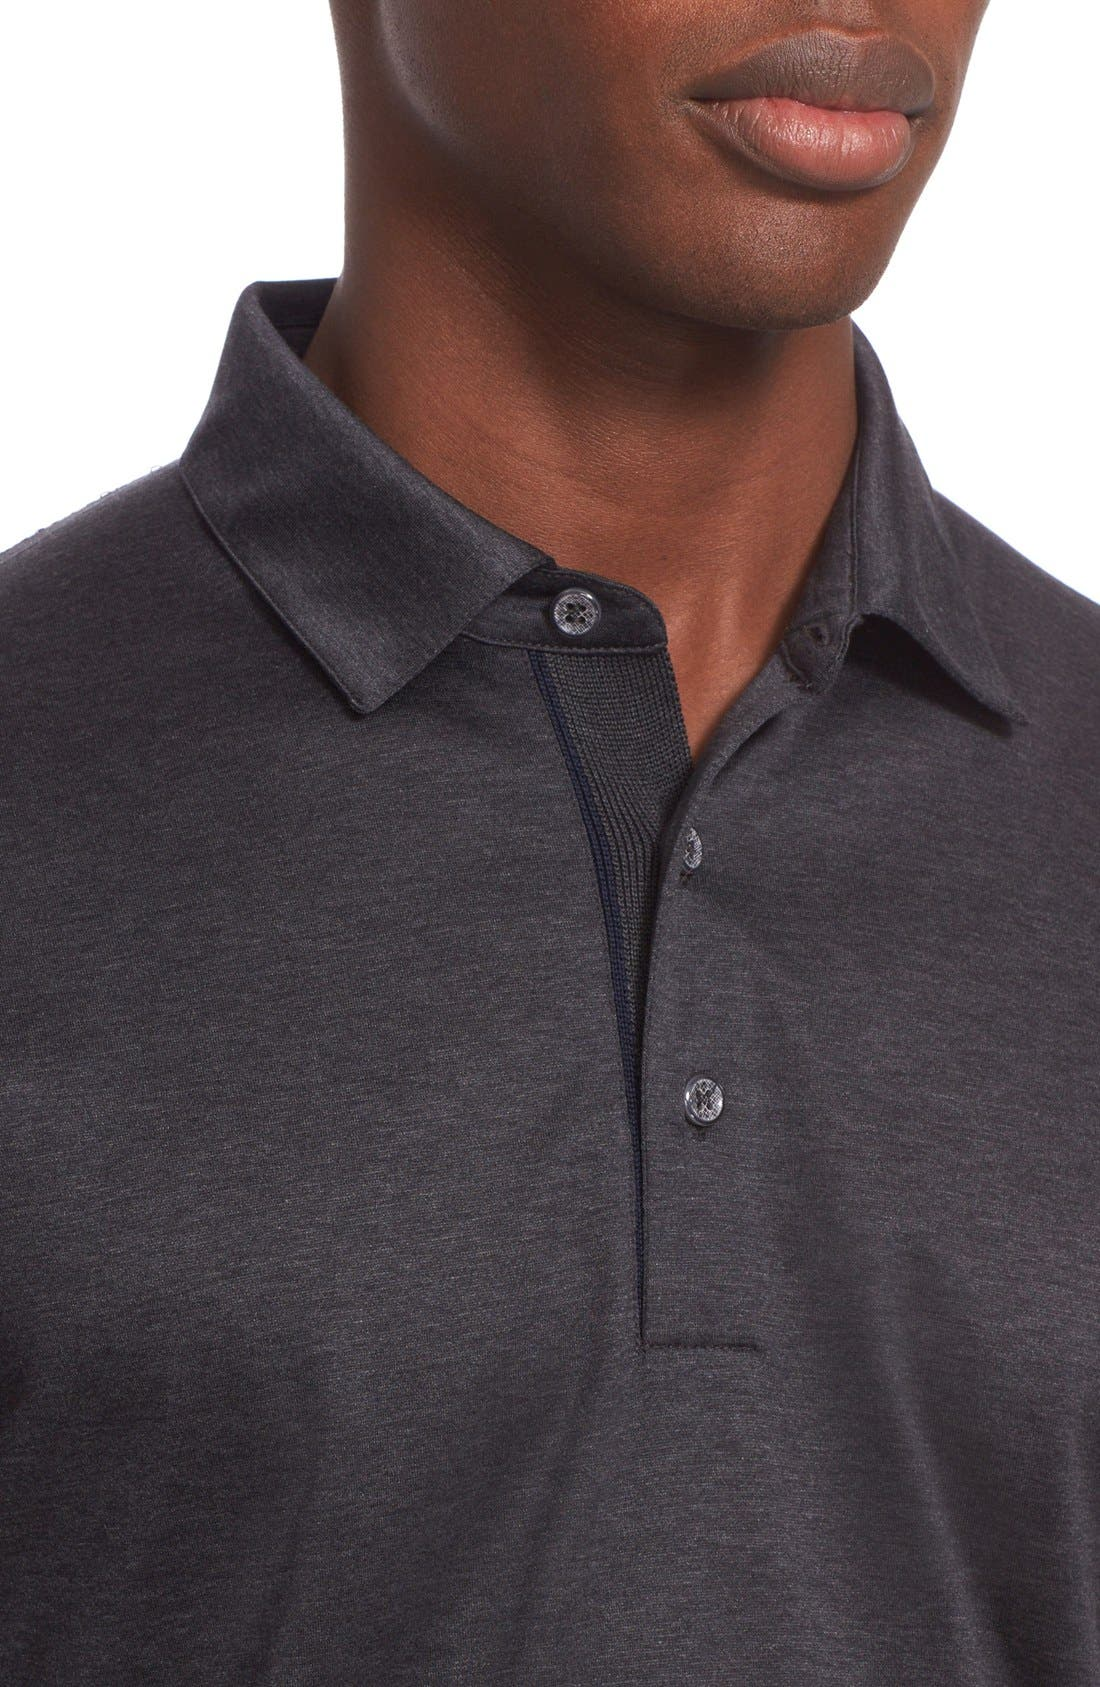 Heathered Mercerized Jersey Polo,                             Alternate thumbnail 4, color,                             020